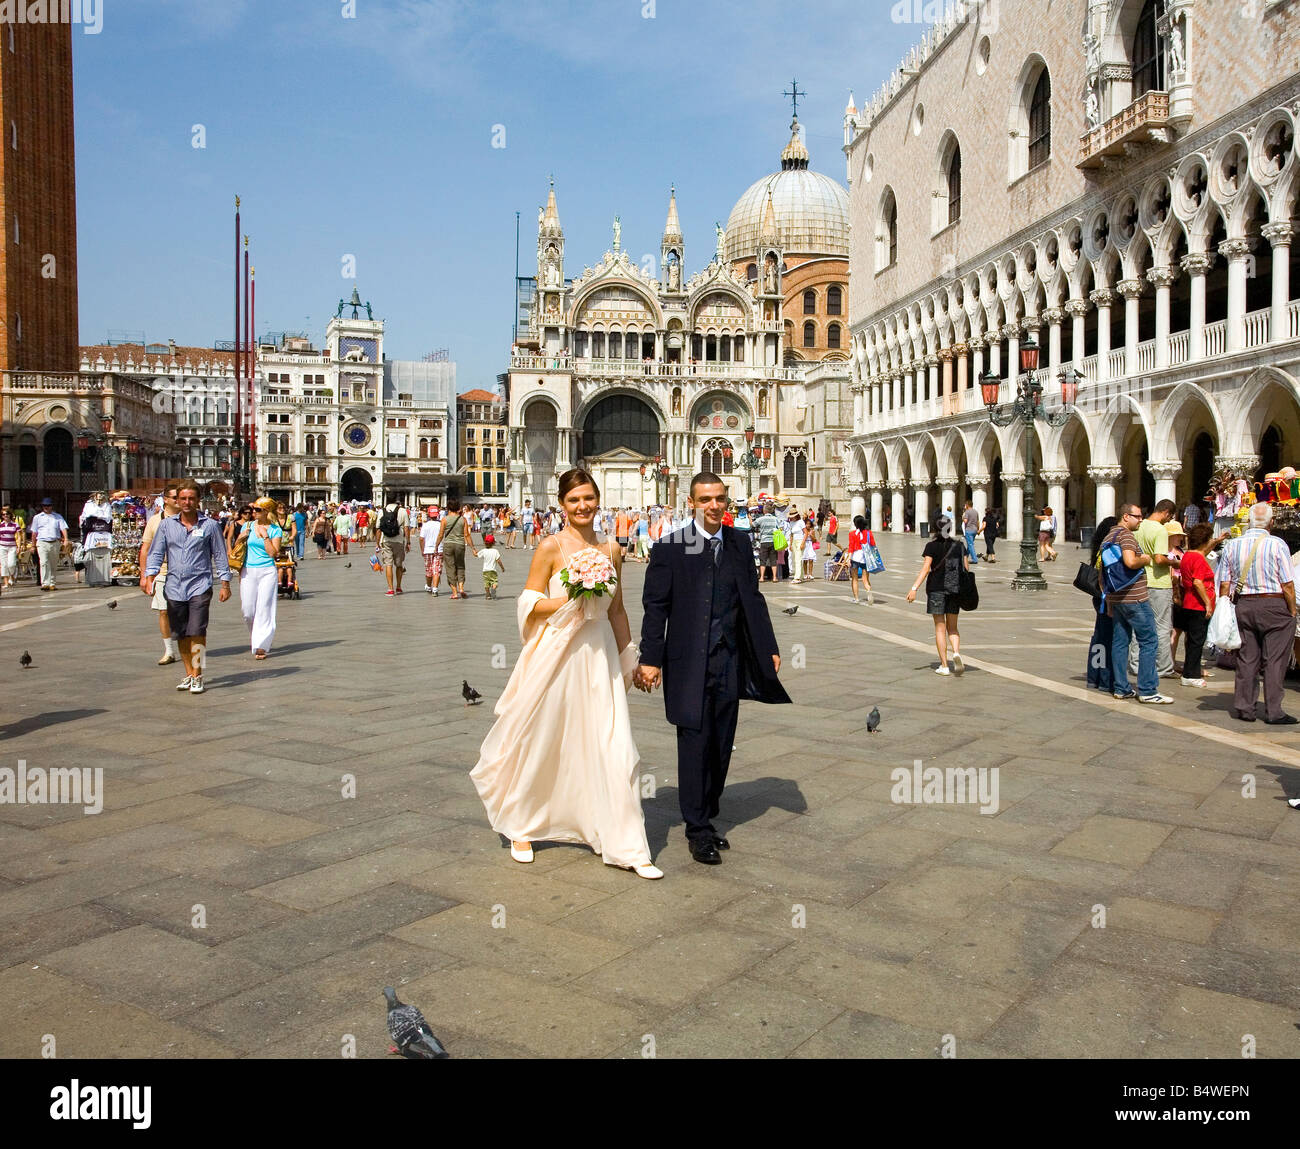 Getting married in Venice Italy - Stock Image